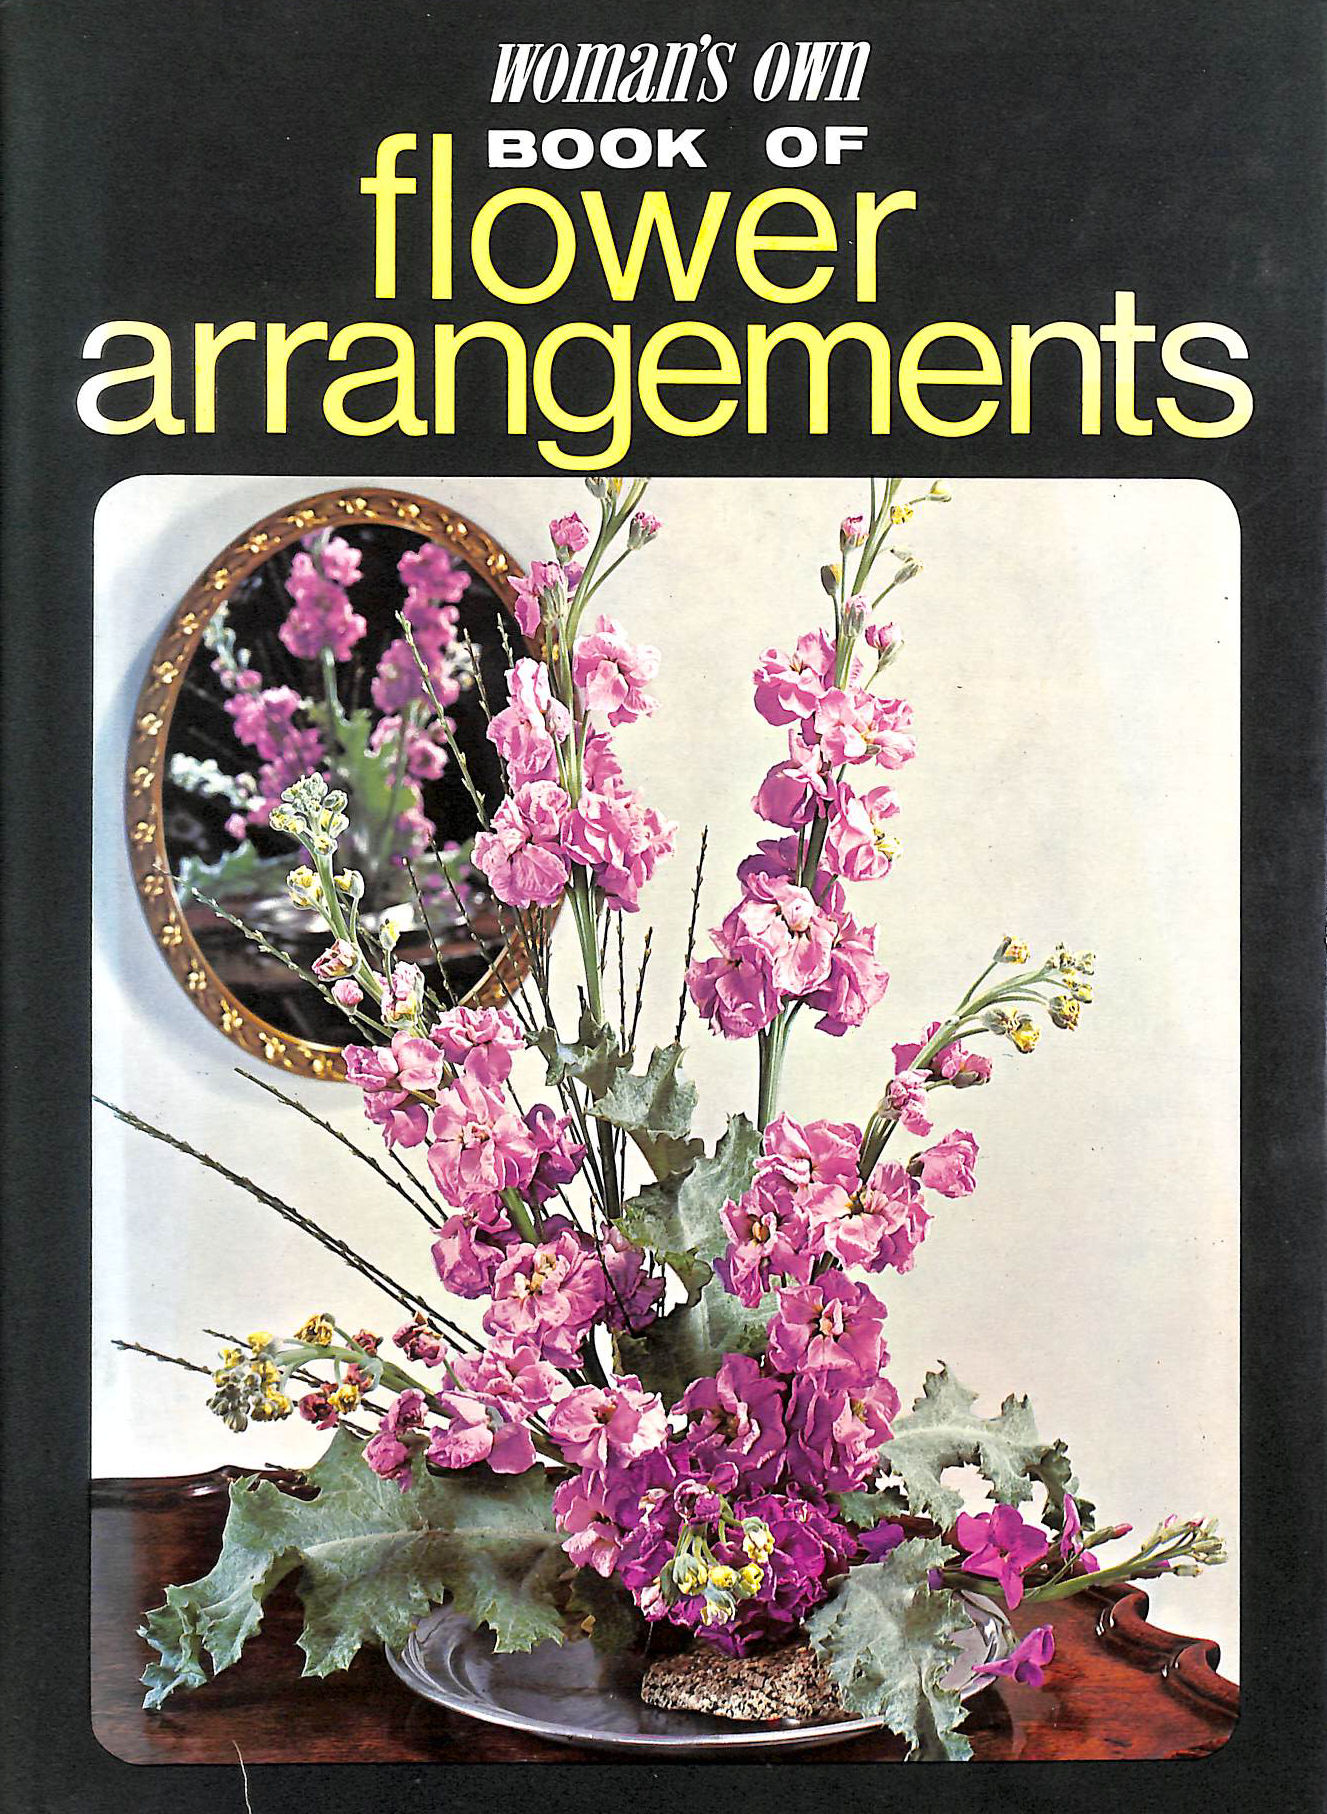 Image for Woman's Own book of Flower Arrangements